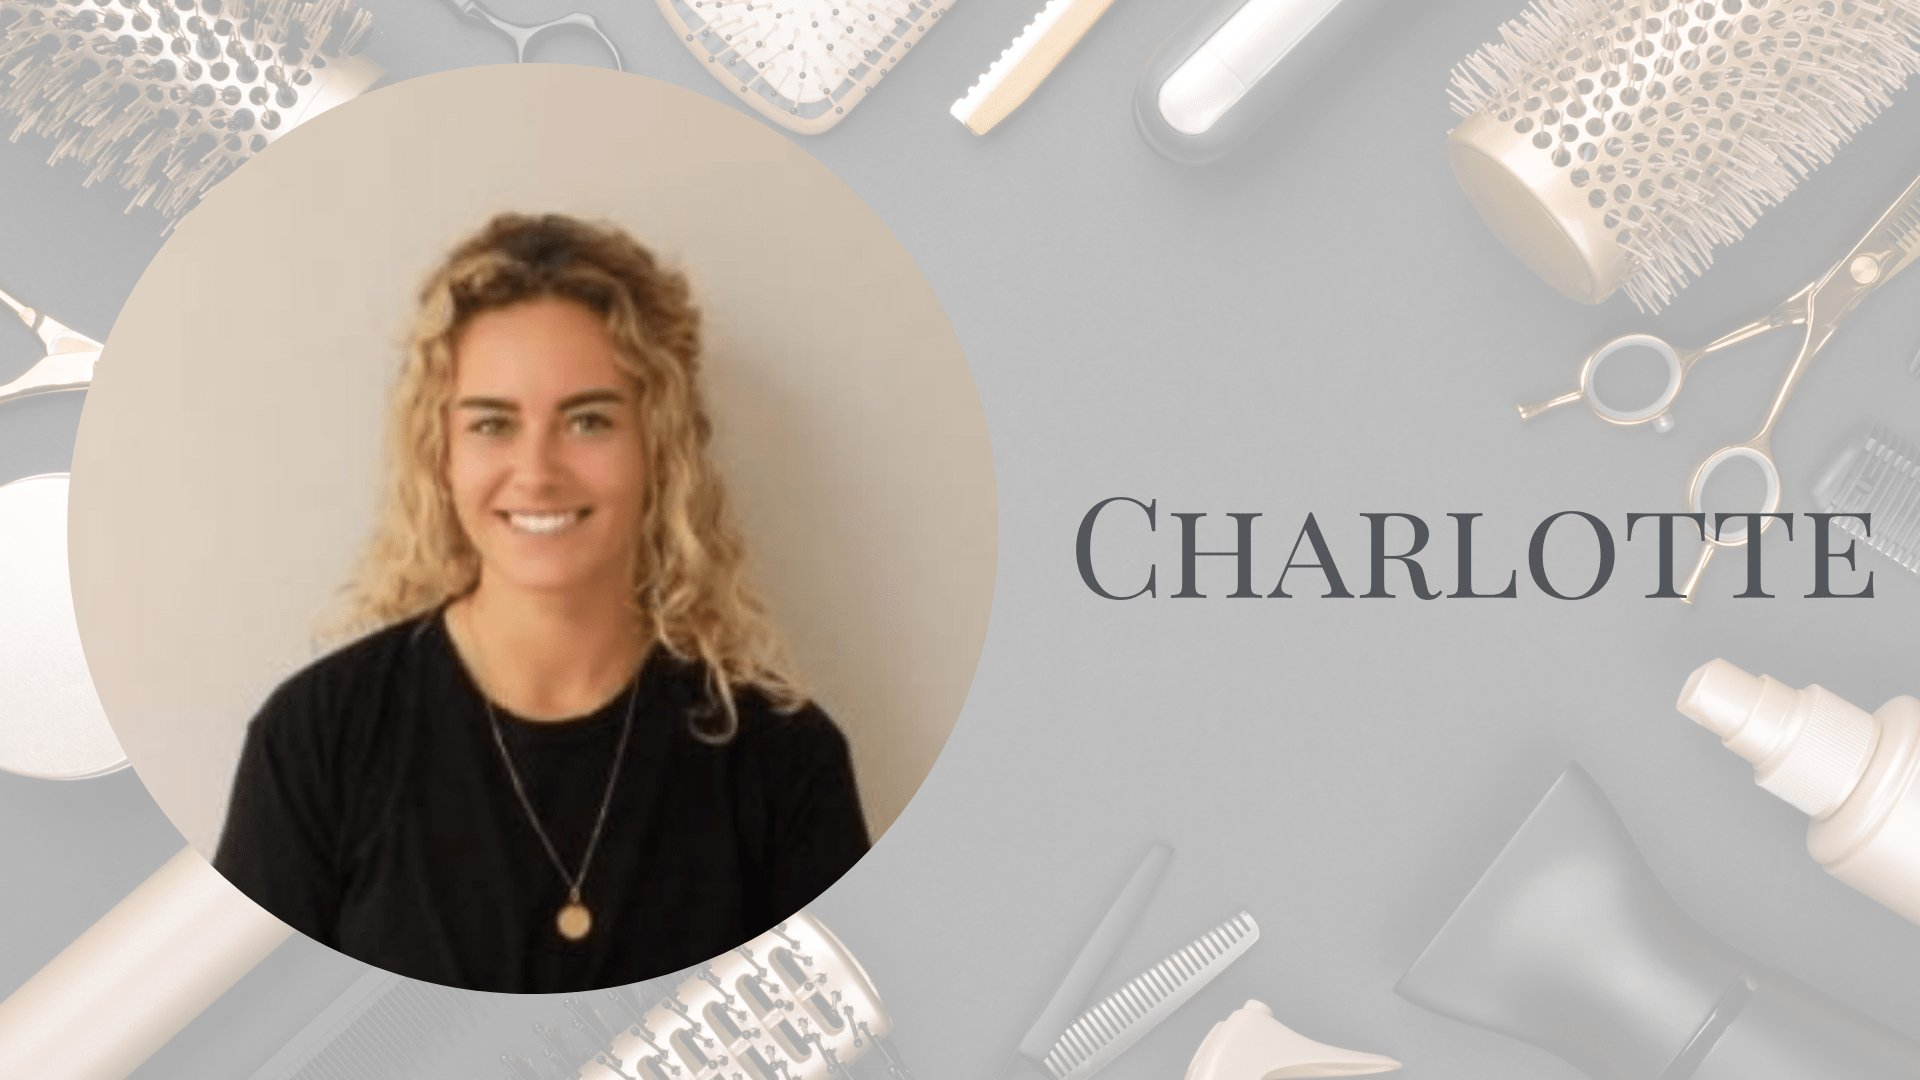 Meet the Creative Directors: Image of Charlotte, a creative director at The Cutting Garden in Plymouth.